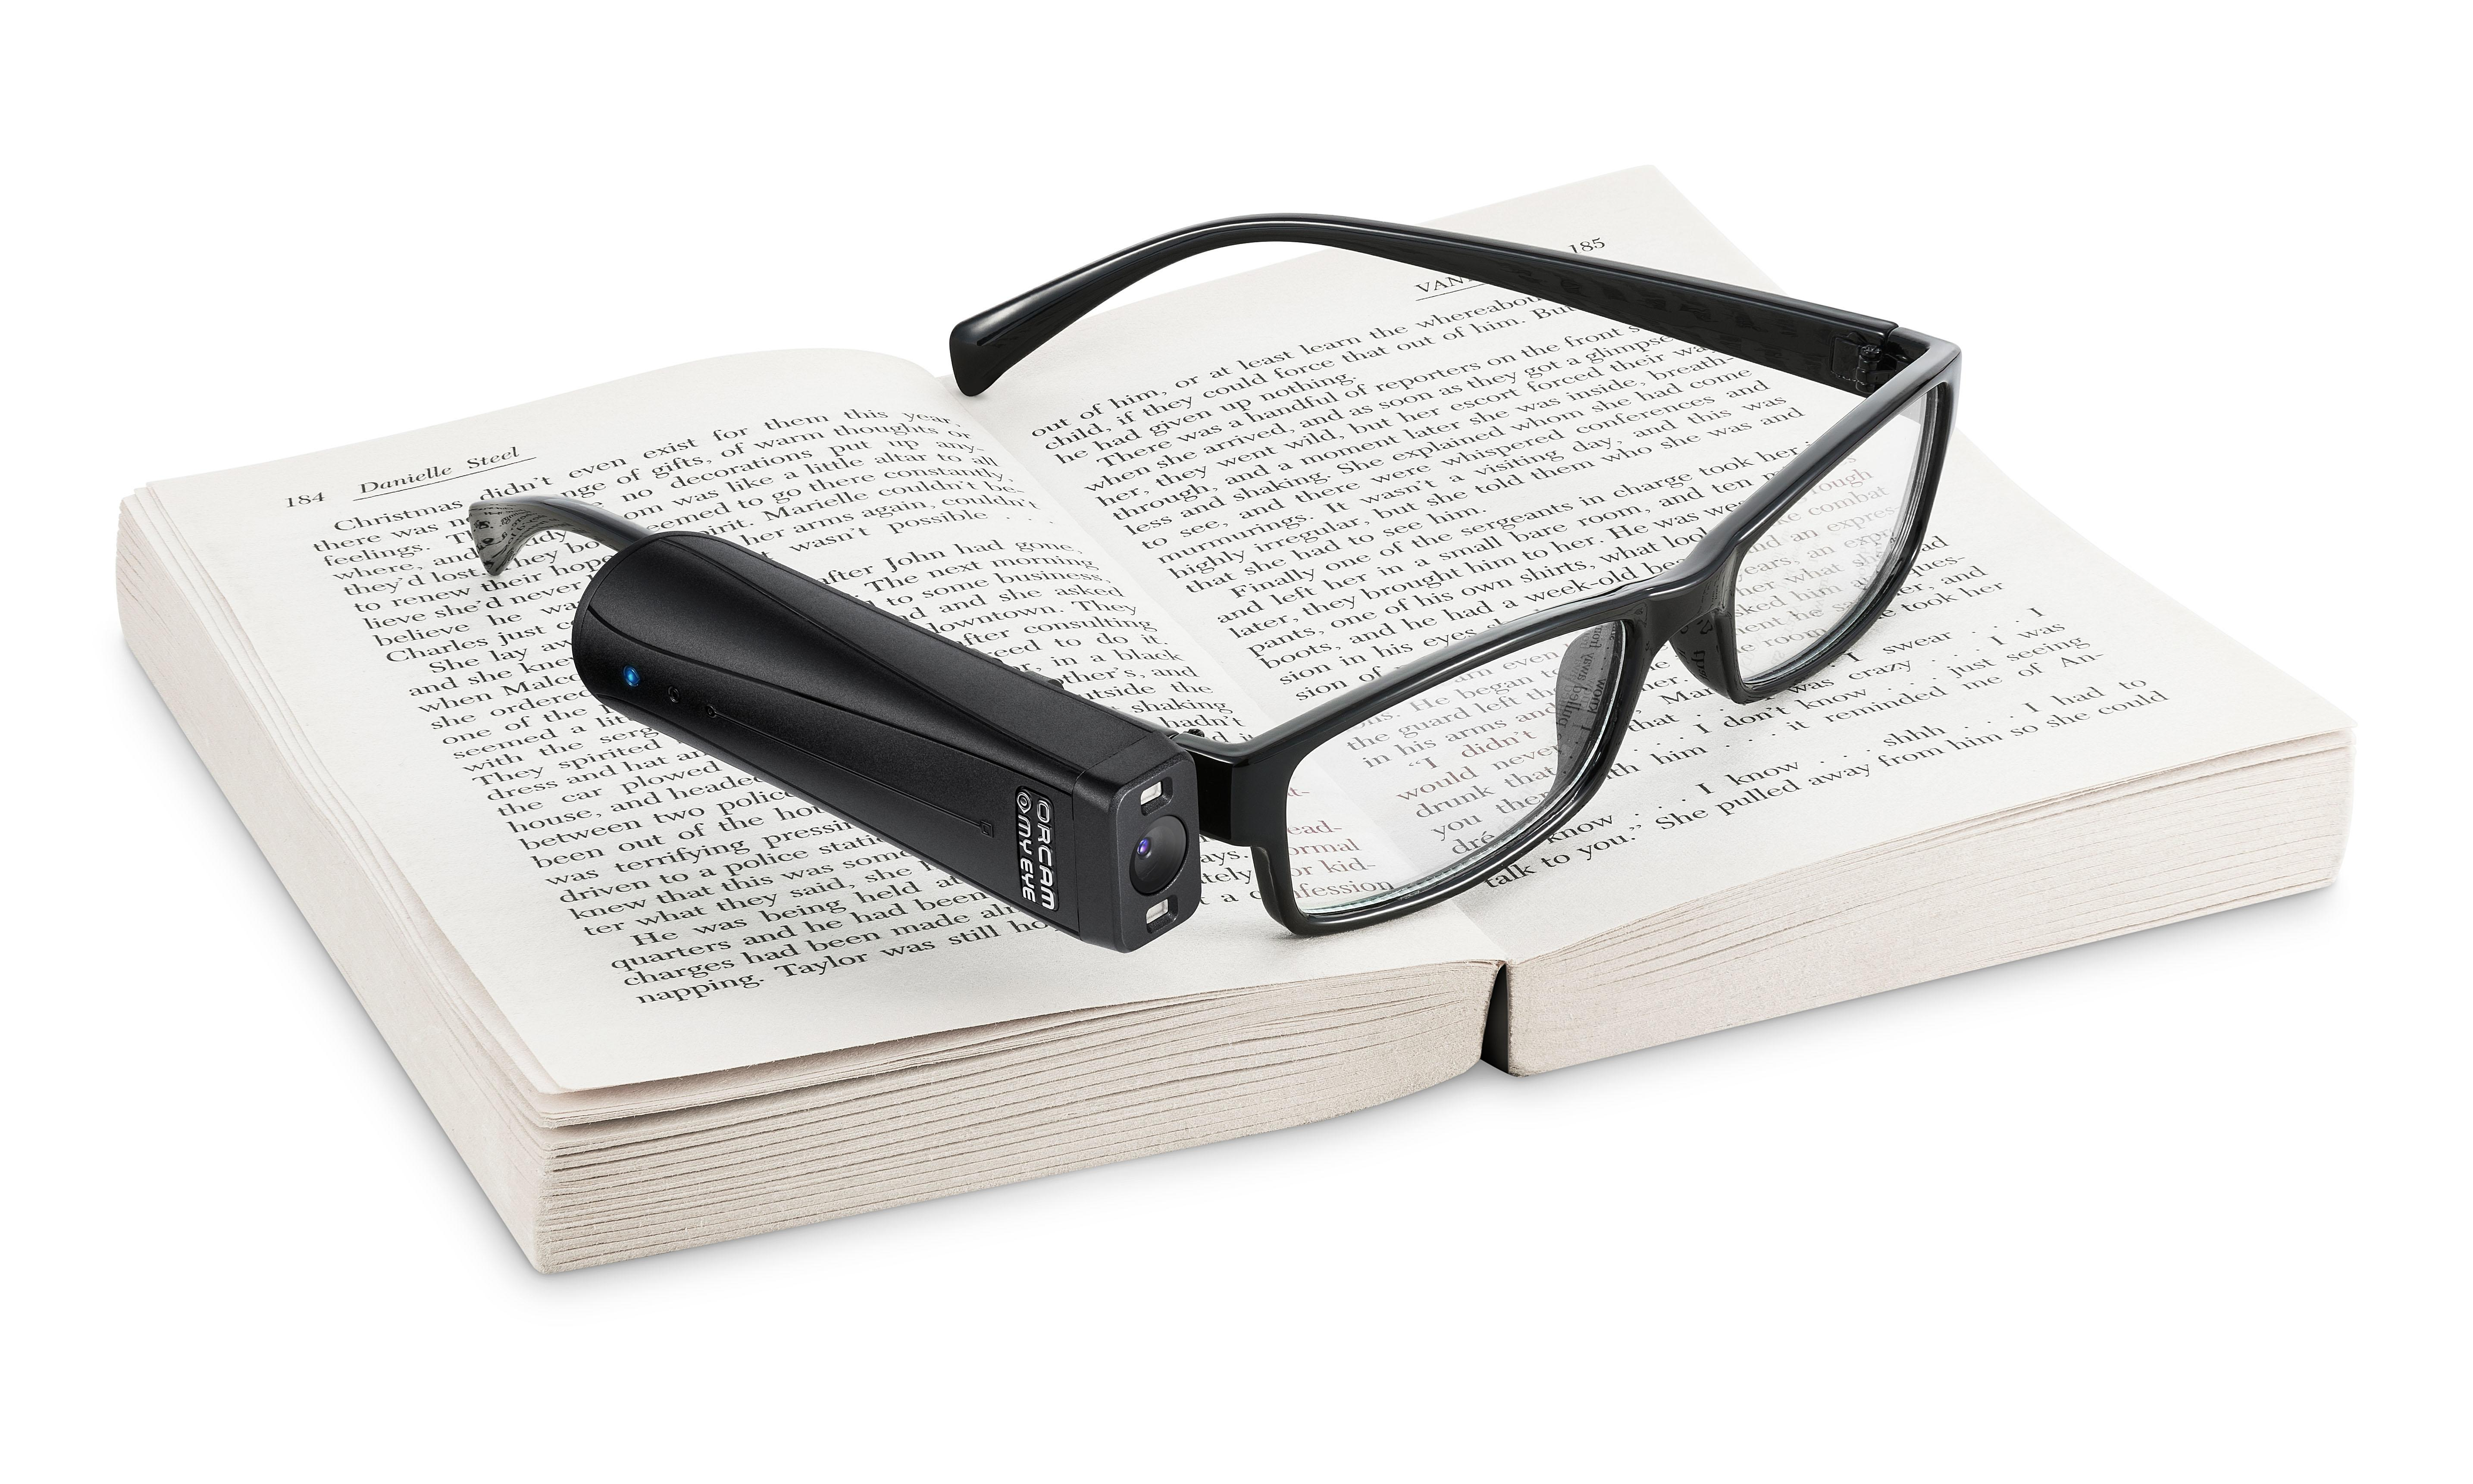 the orcam myeye smart on their glasses mount sat on a book